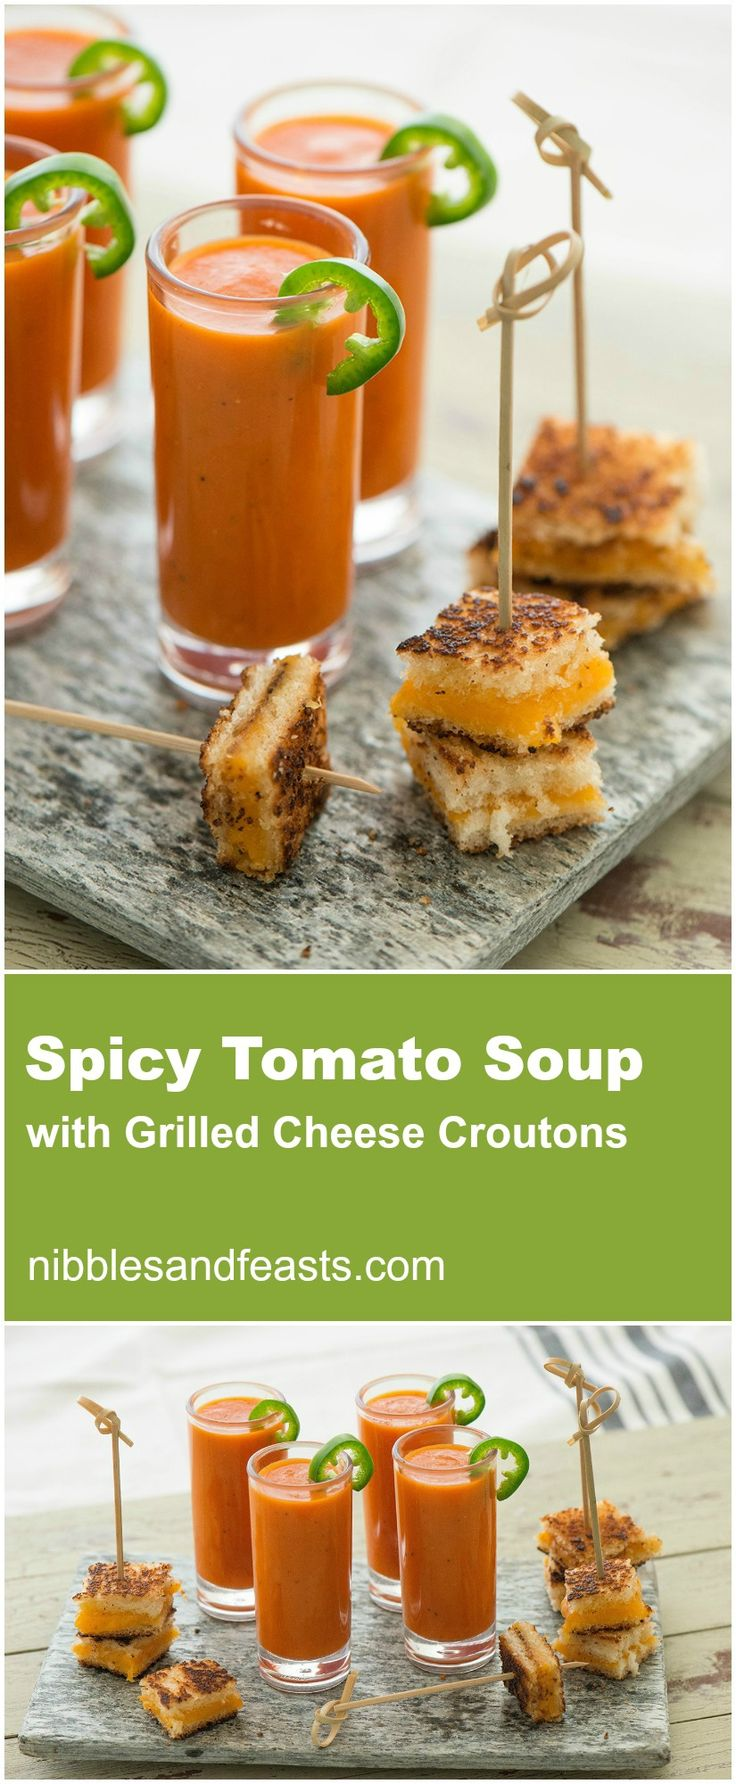 Spicy Tomato Soup with Grilled Cheese Croutons. Give this classic soup ...